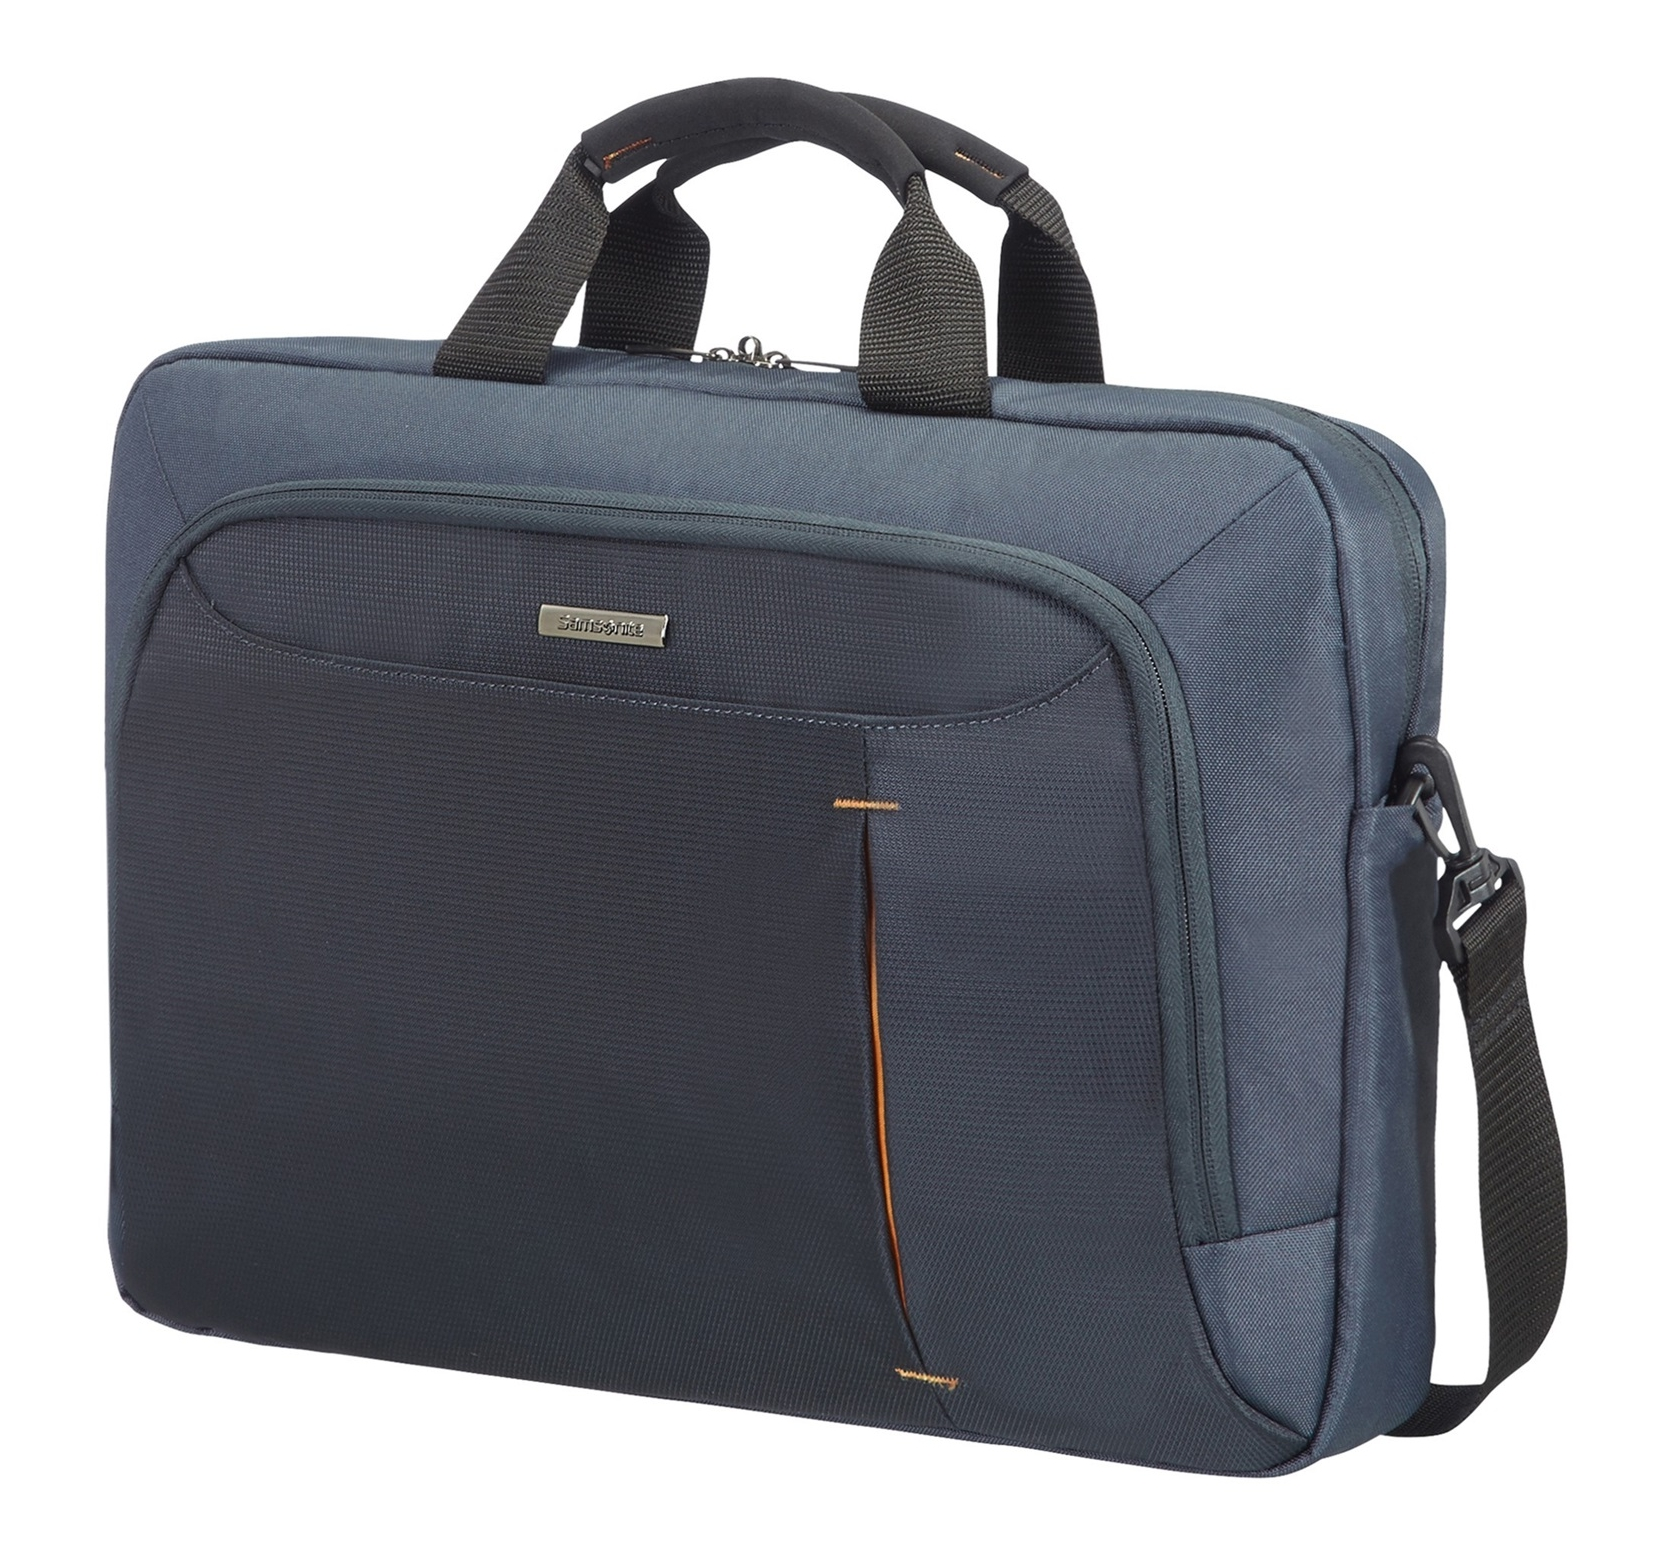 SAMSONITE - BORSE NOTEBOOK - 5414847545252